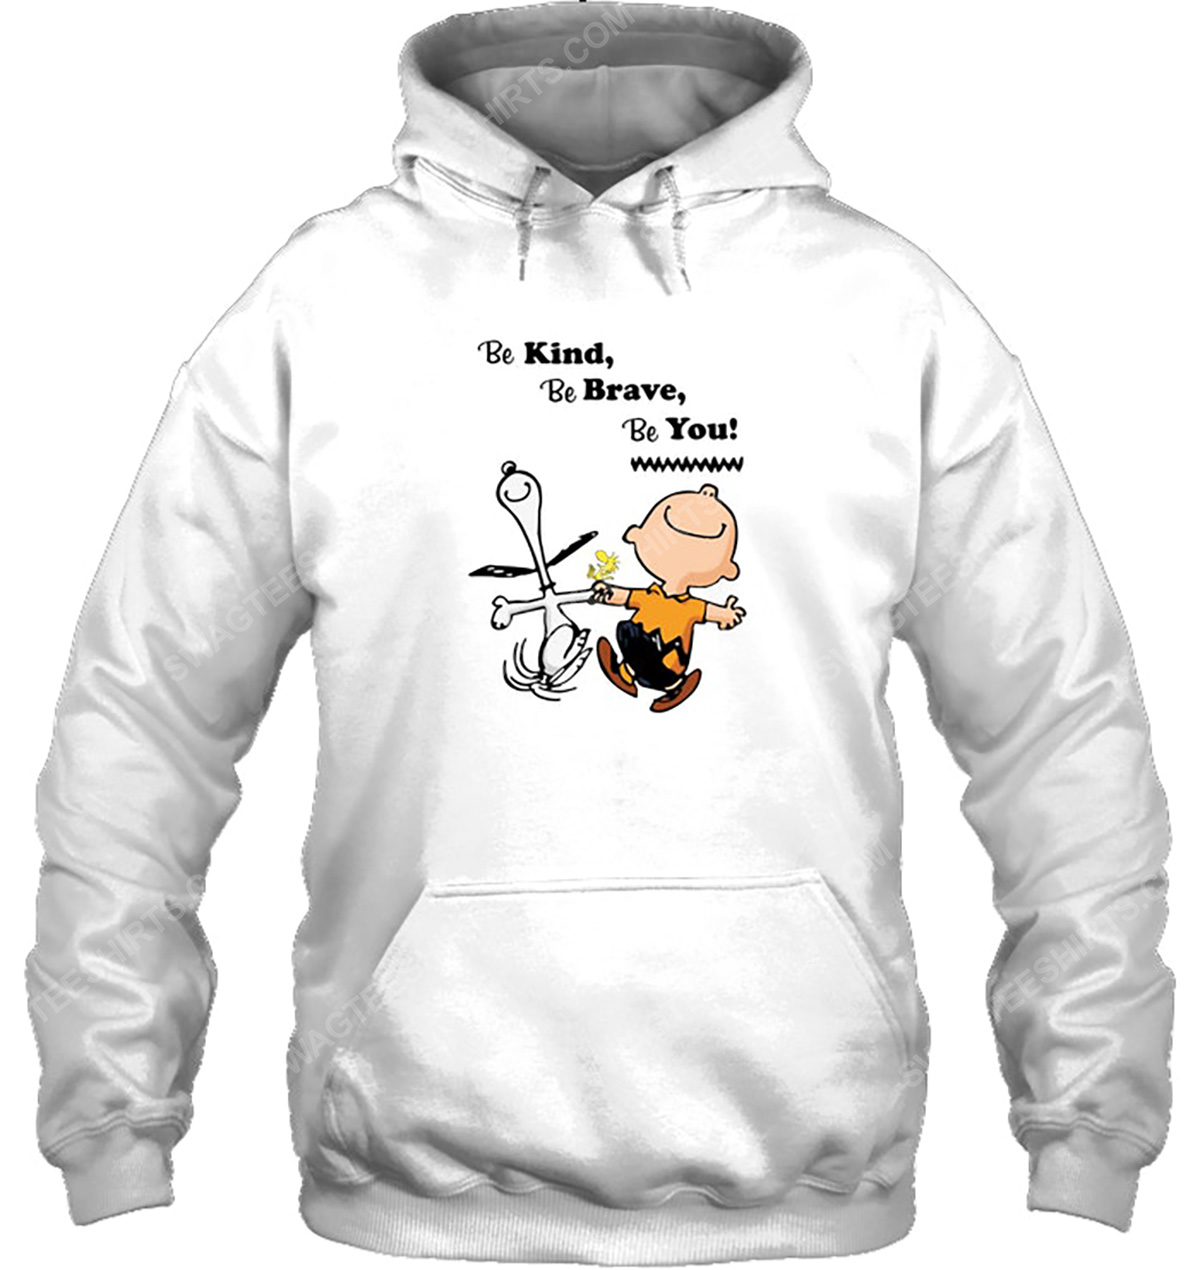 Charlie brown and snoopy be kind be brave be you hoodie 1